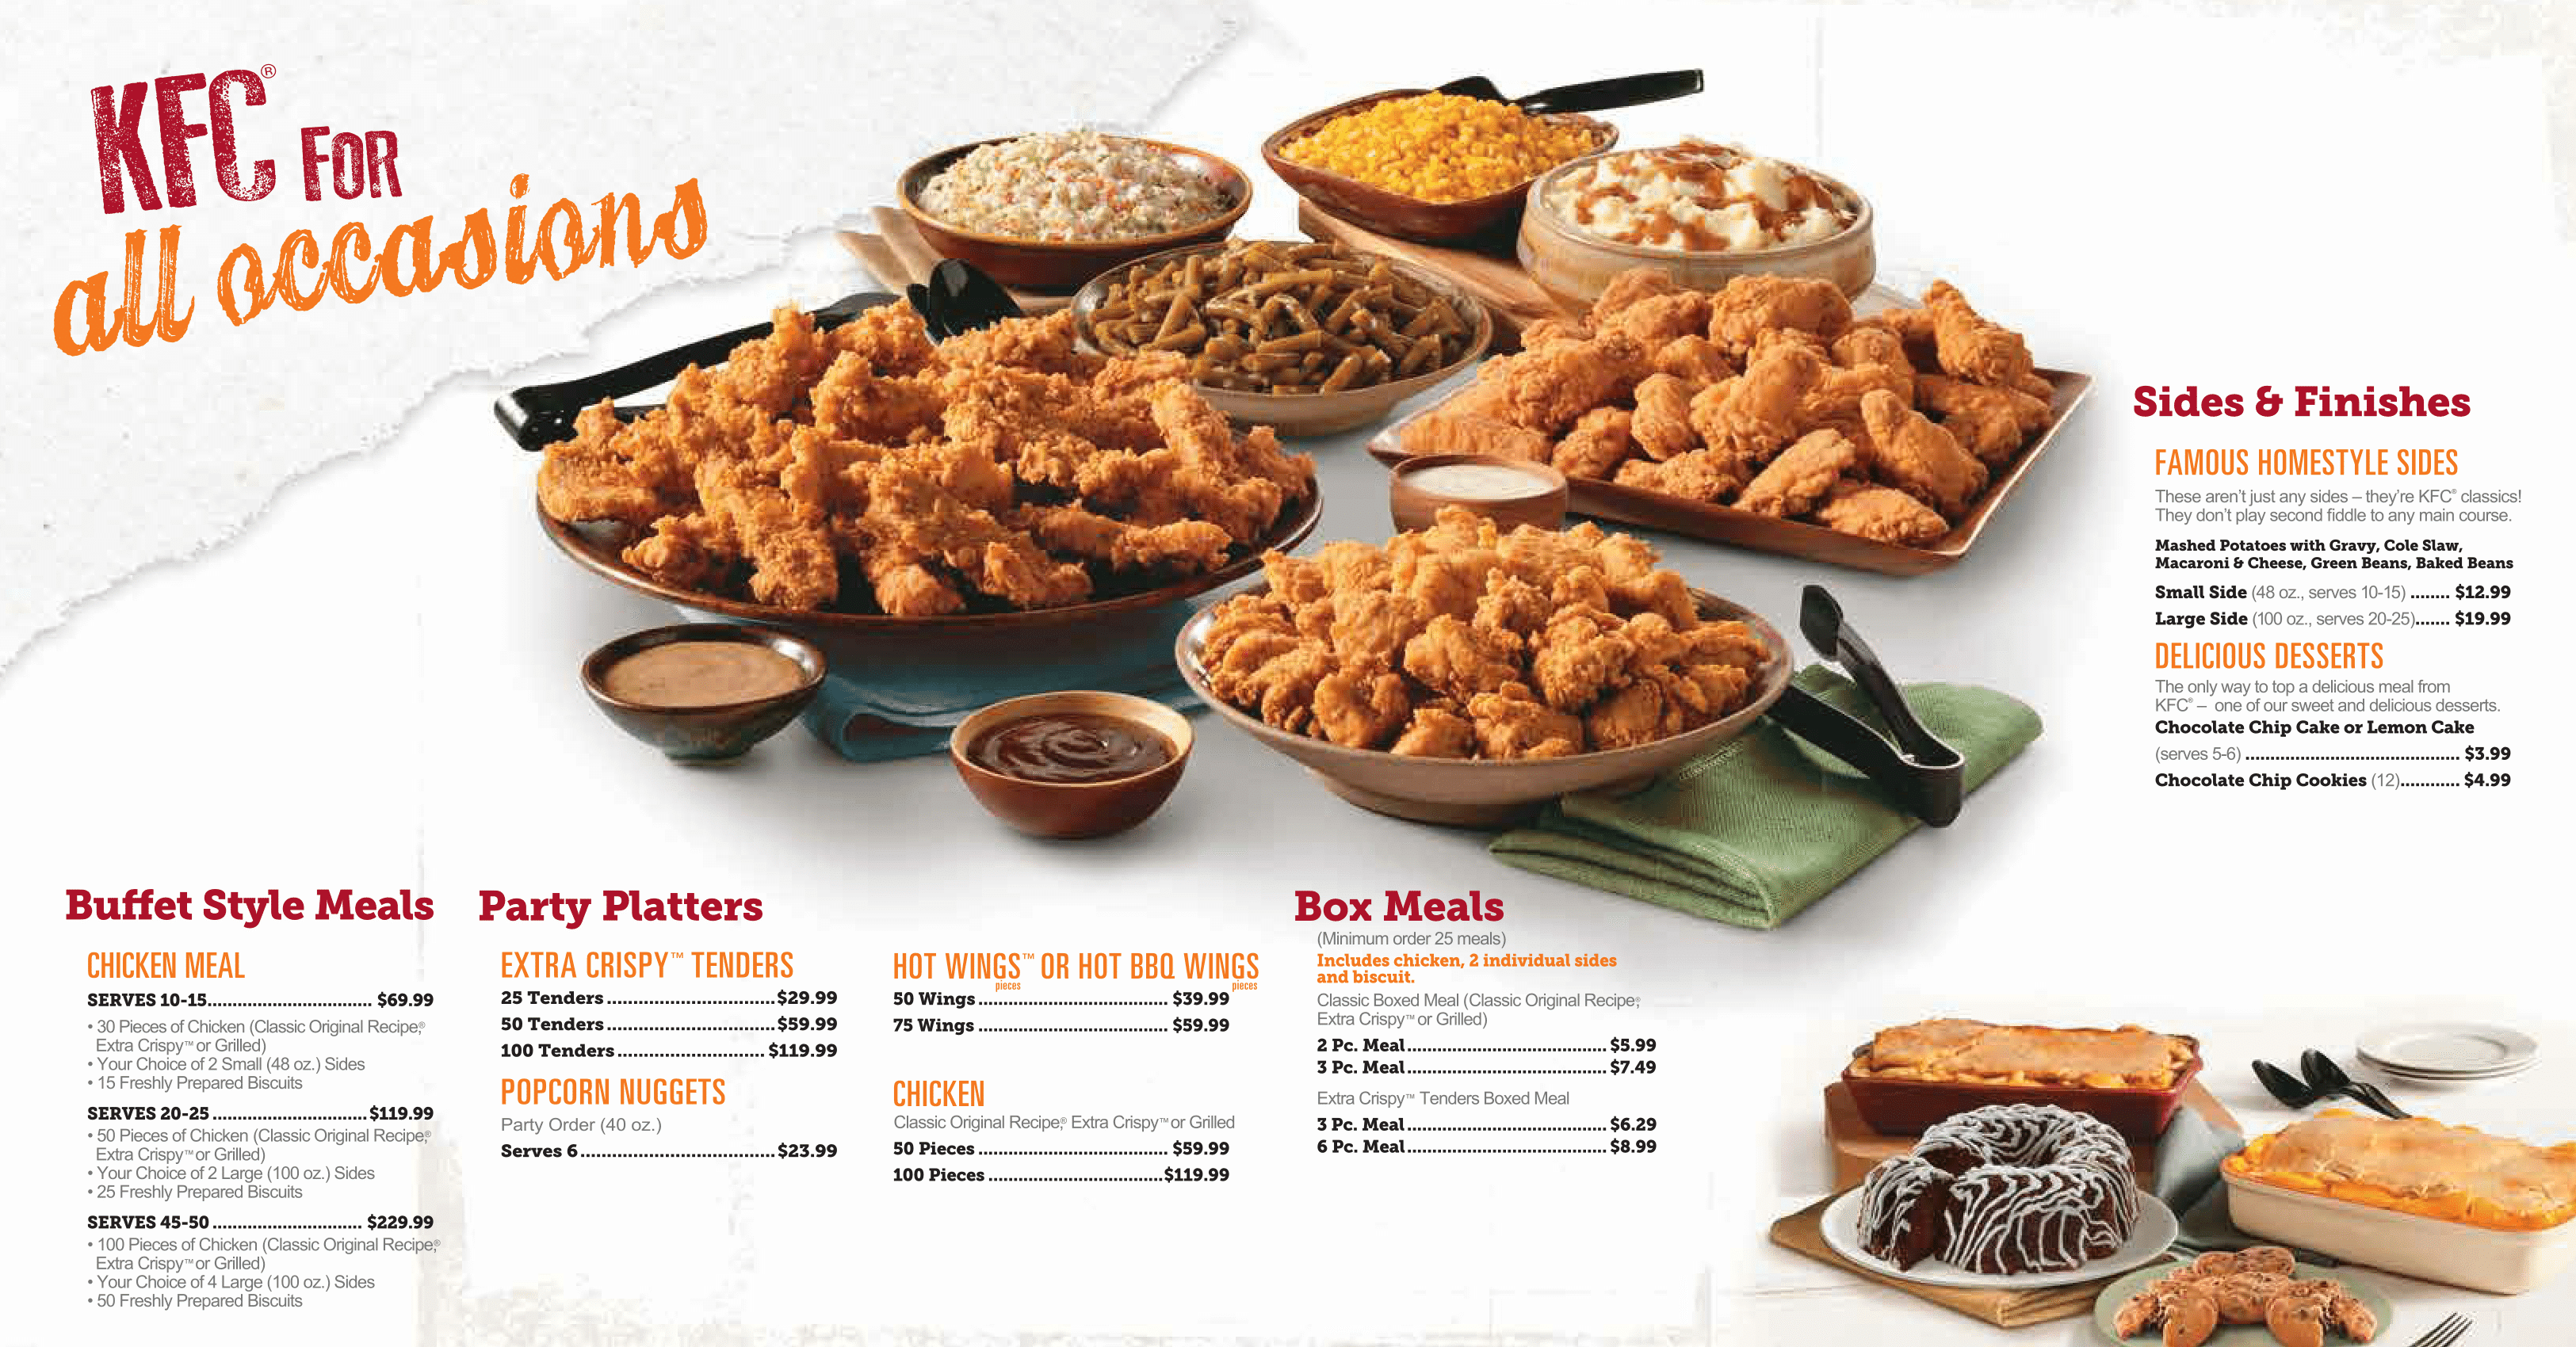 Kfc catering menu prices pdf catering menu prices pinterest kfc catering menu prices pdf forumfinder